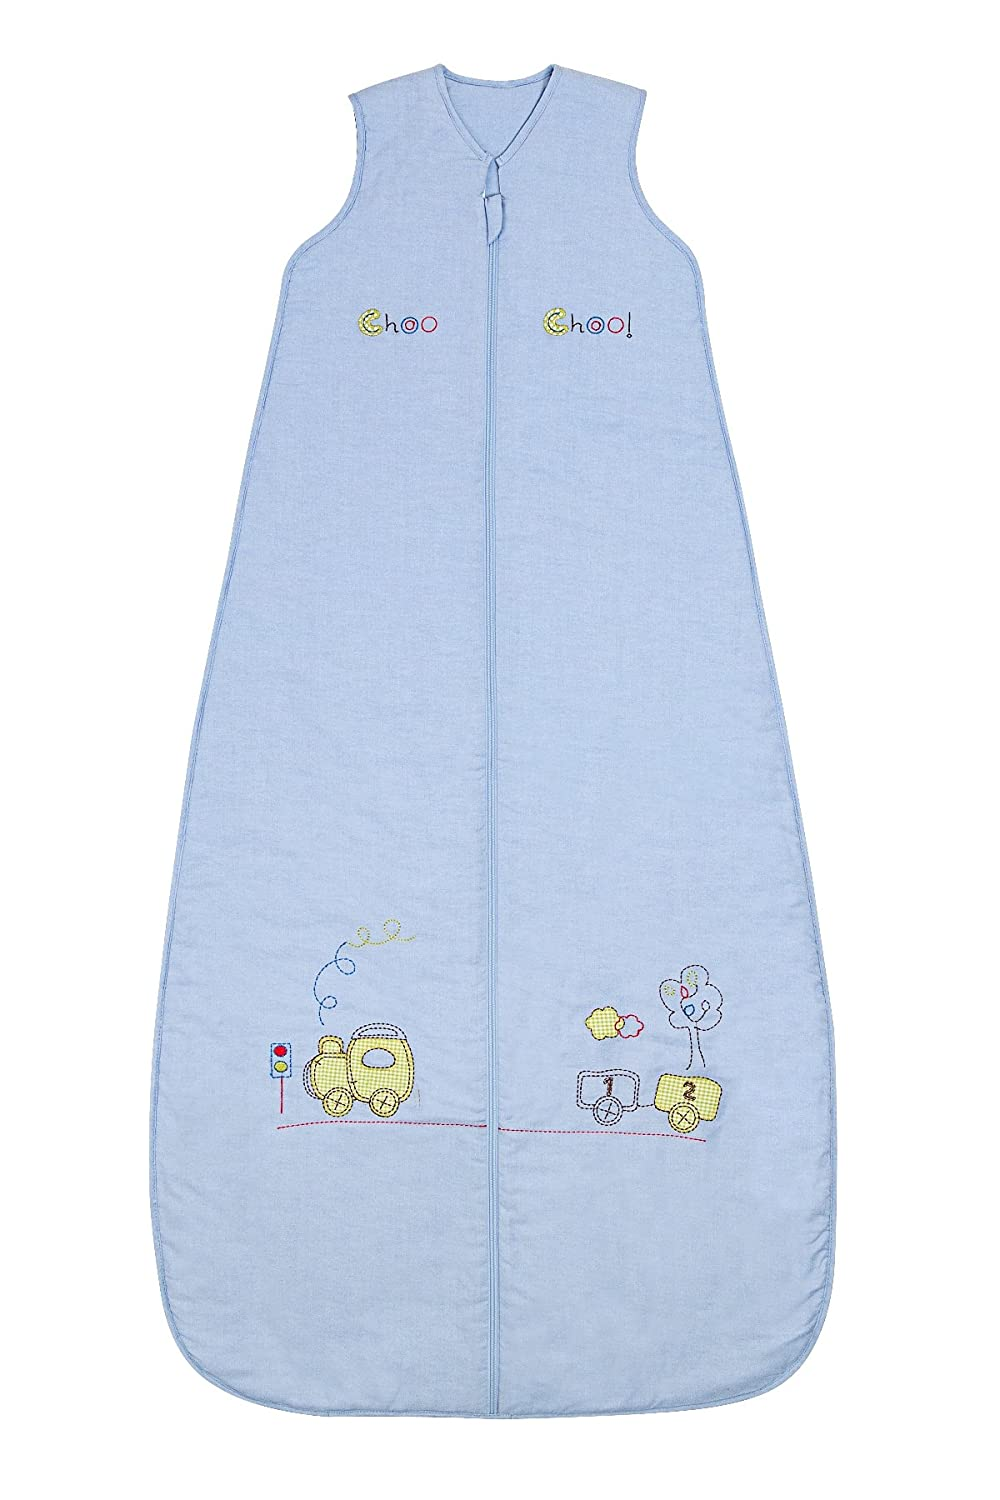 Slumbersac Baby Sleeping Bag 2.5 Tog - Train, 0-6 months